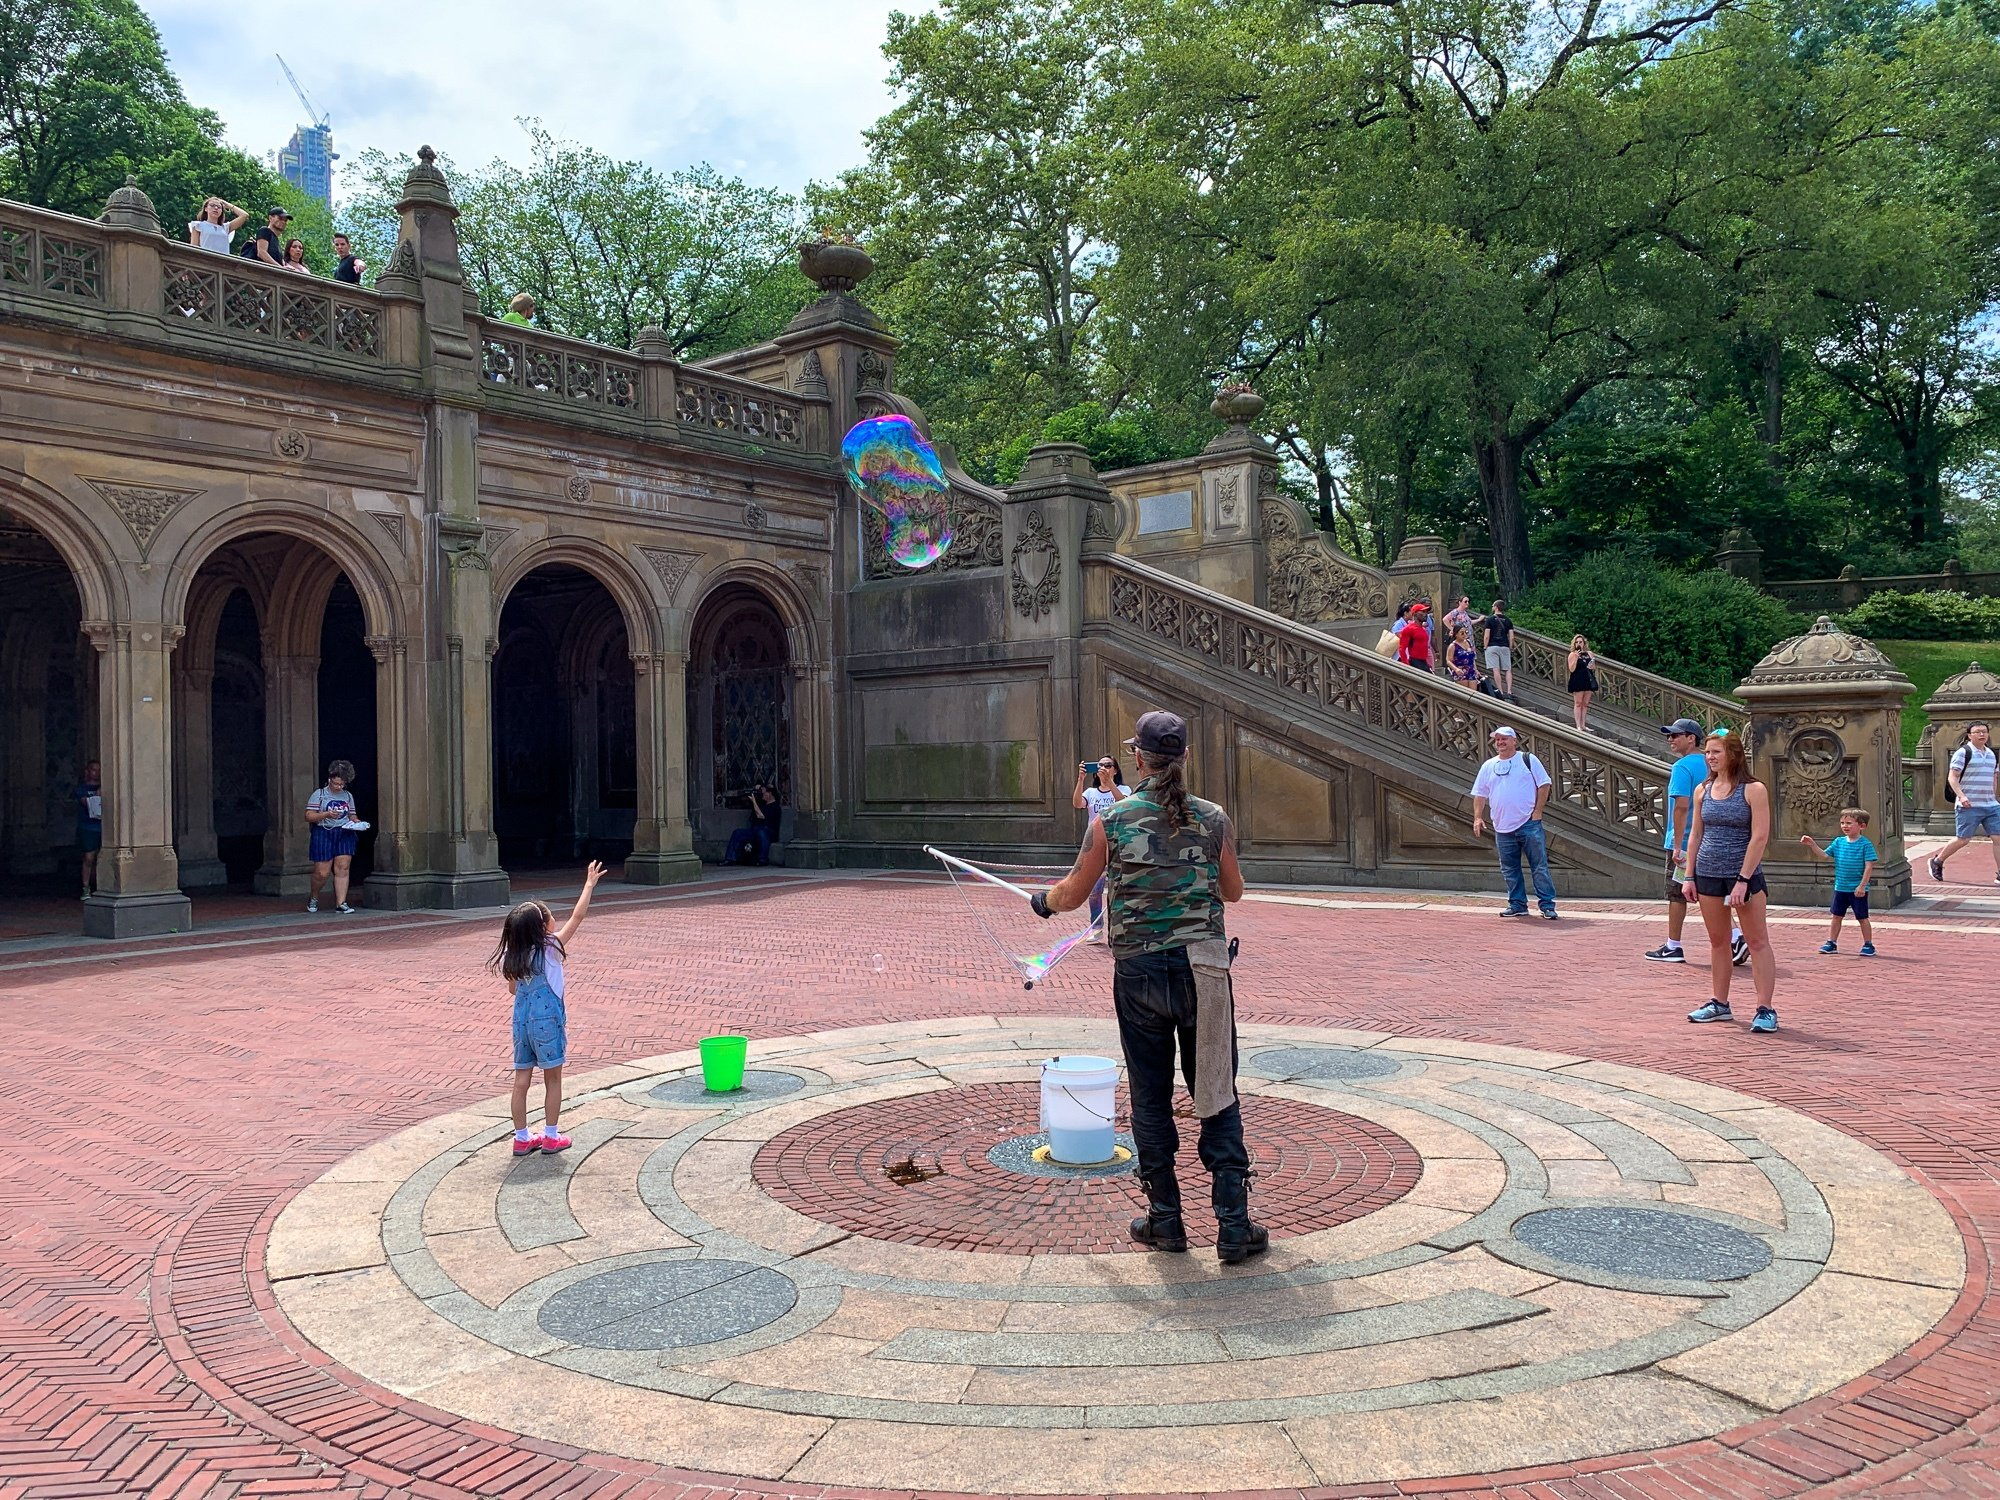 Bubble maker in Central Park with kids